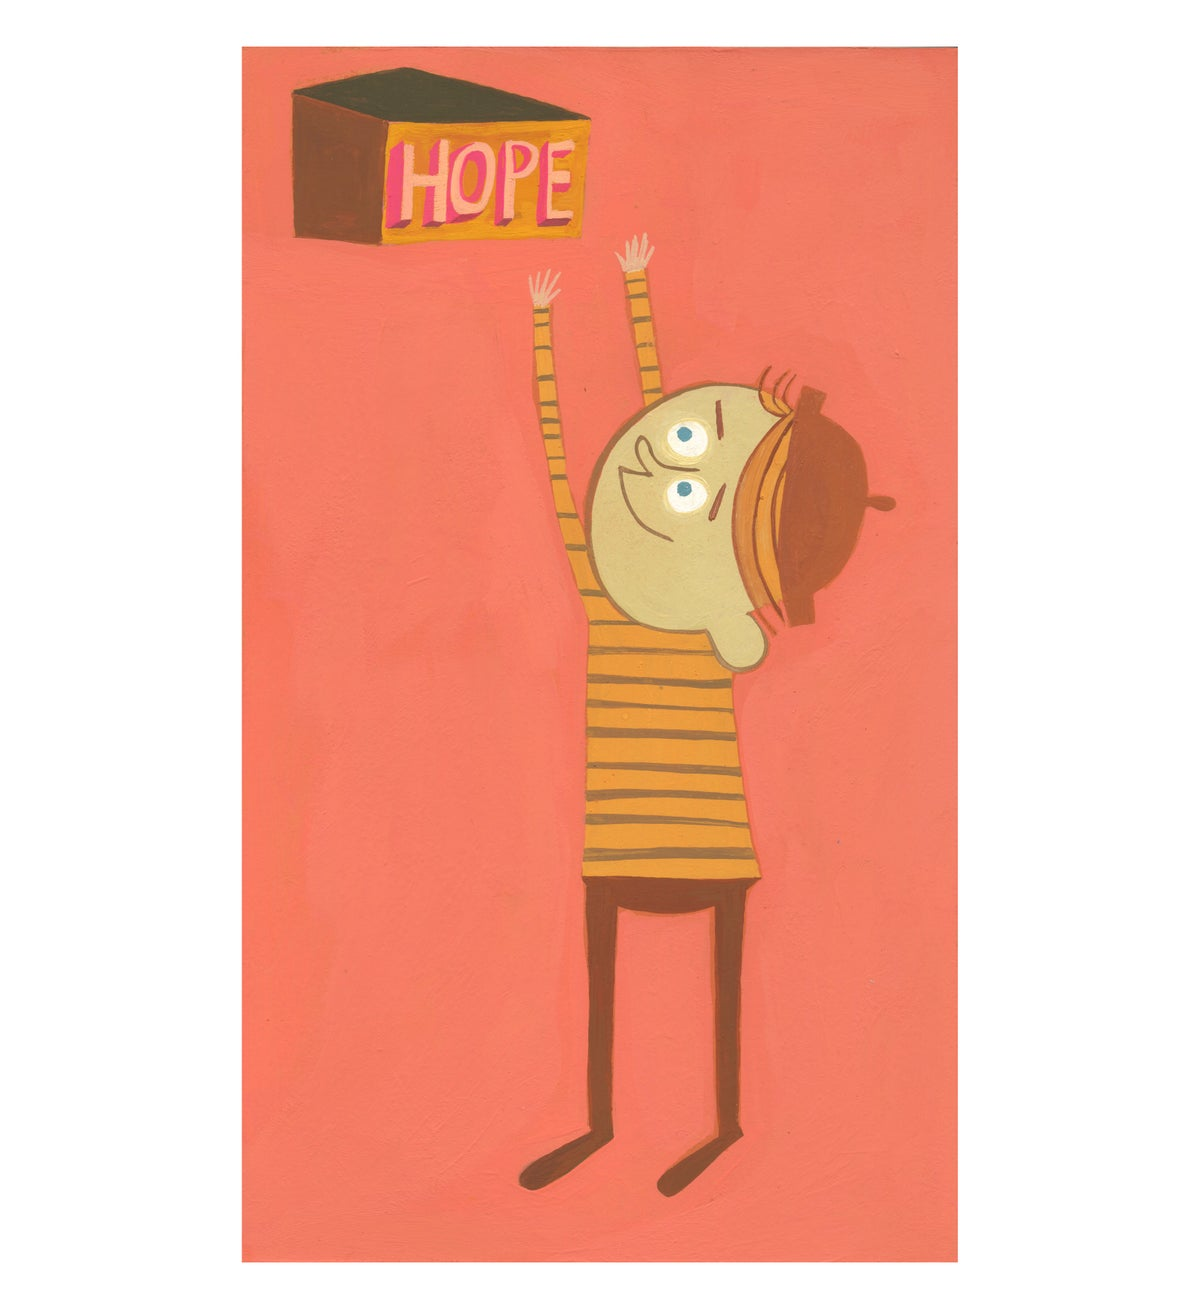 Image of Hope. Original gouache painting.